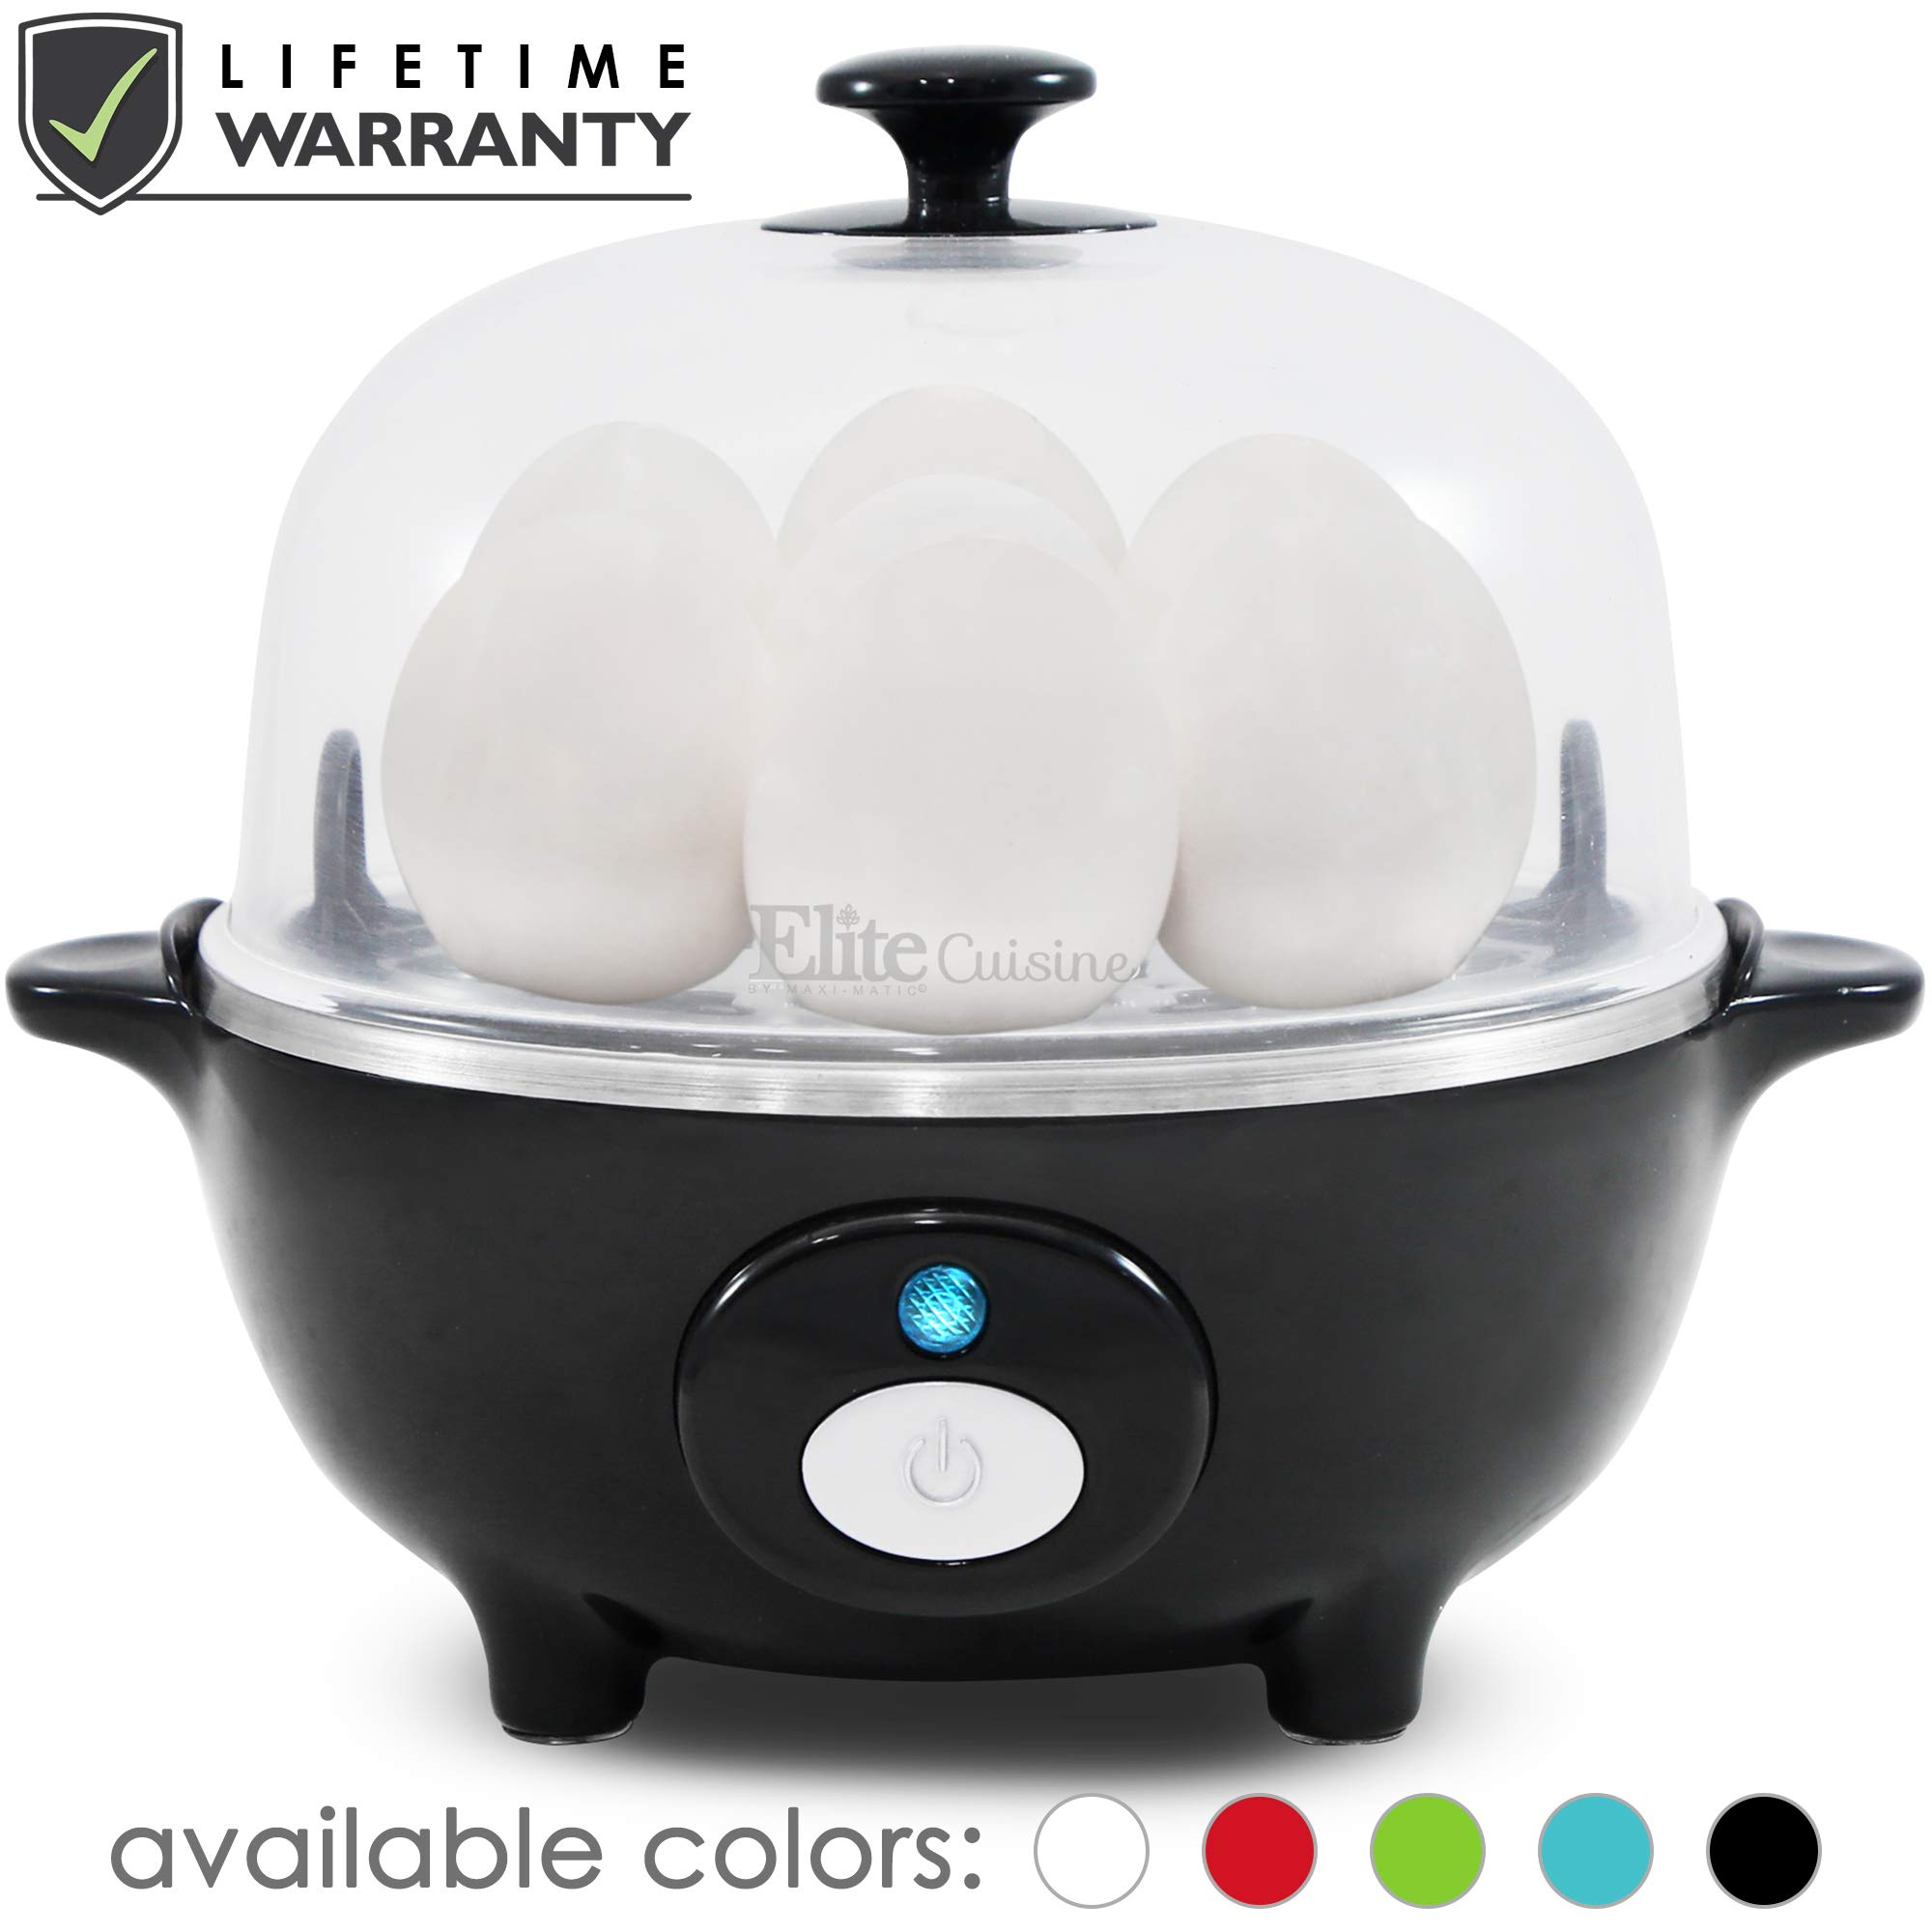 Maxi-Matic EGC-007B Easy Electric Egg Poacher, Omelet & Soft, Medium, Hard-Boiled Measuring Cup Included, 7 Capacity, Black by Maxi-Matic